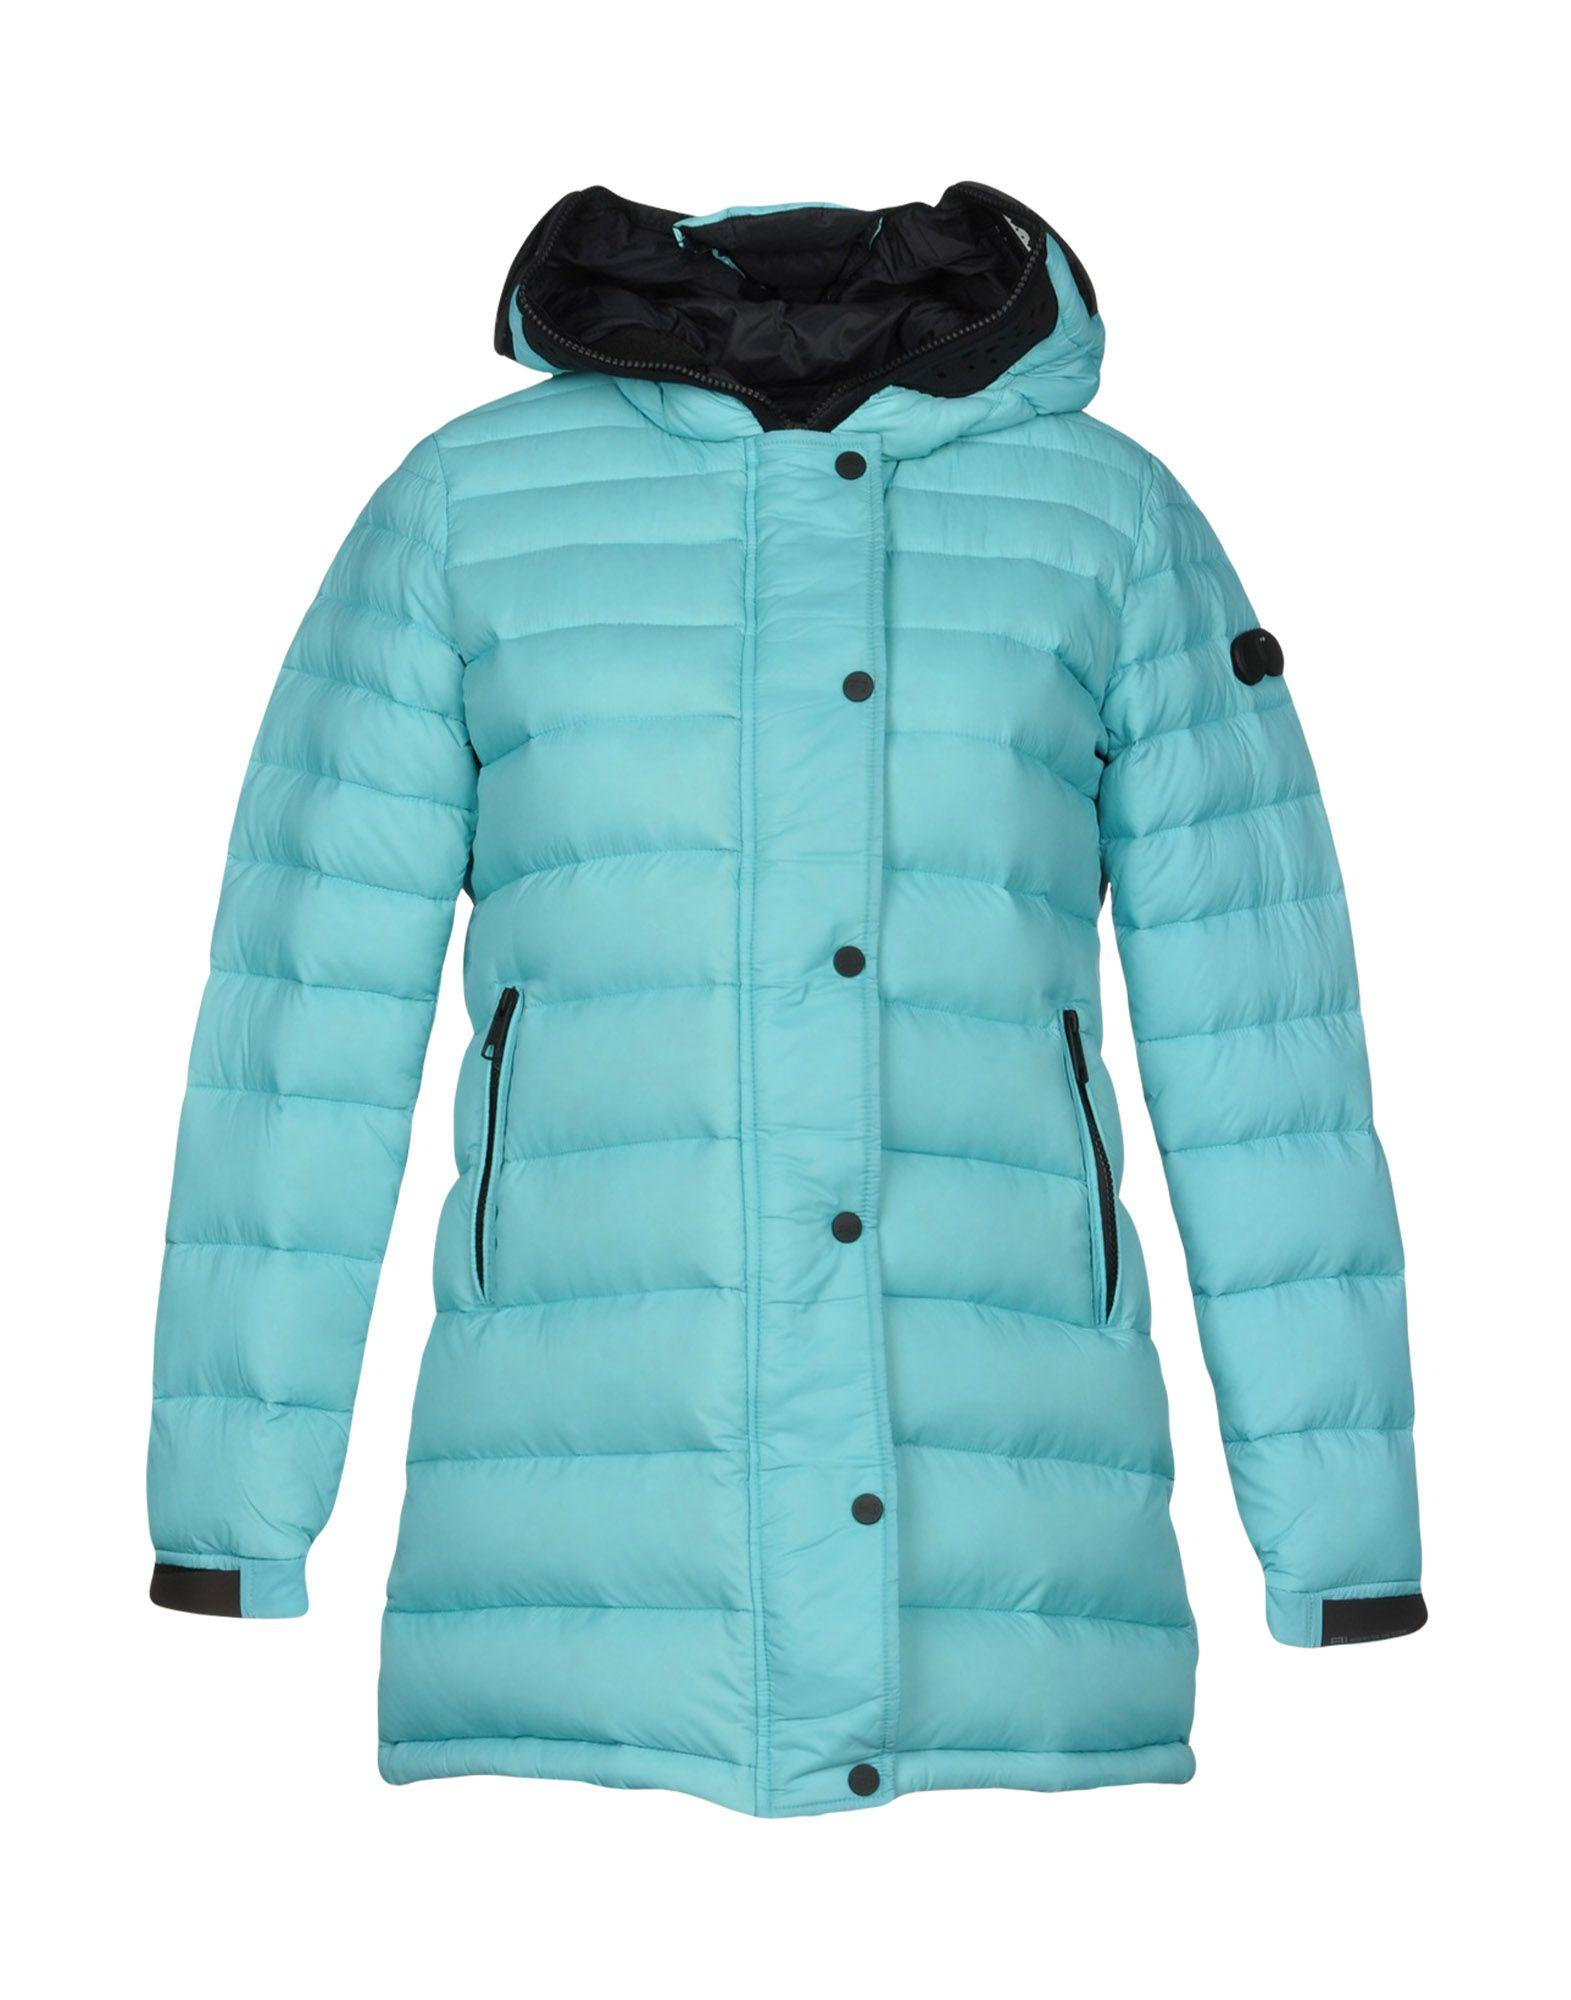 Ai Riders On The Storm Down Jacket In Sky Blue